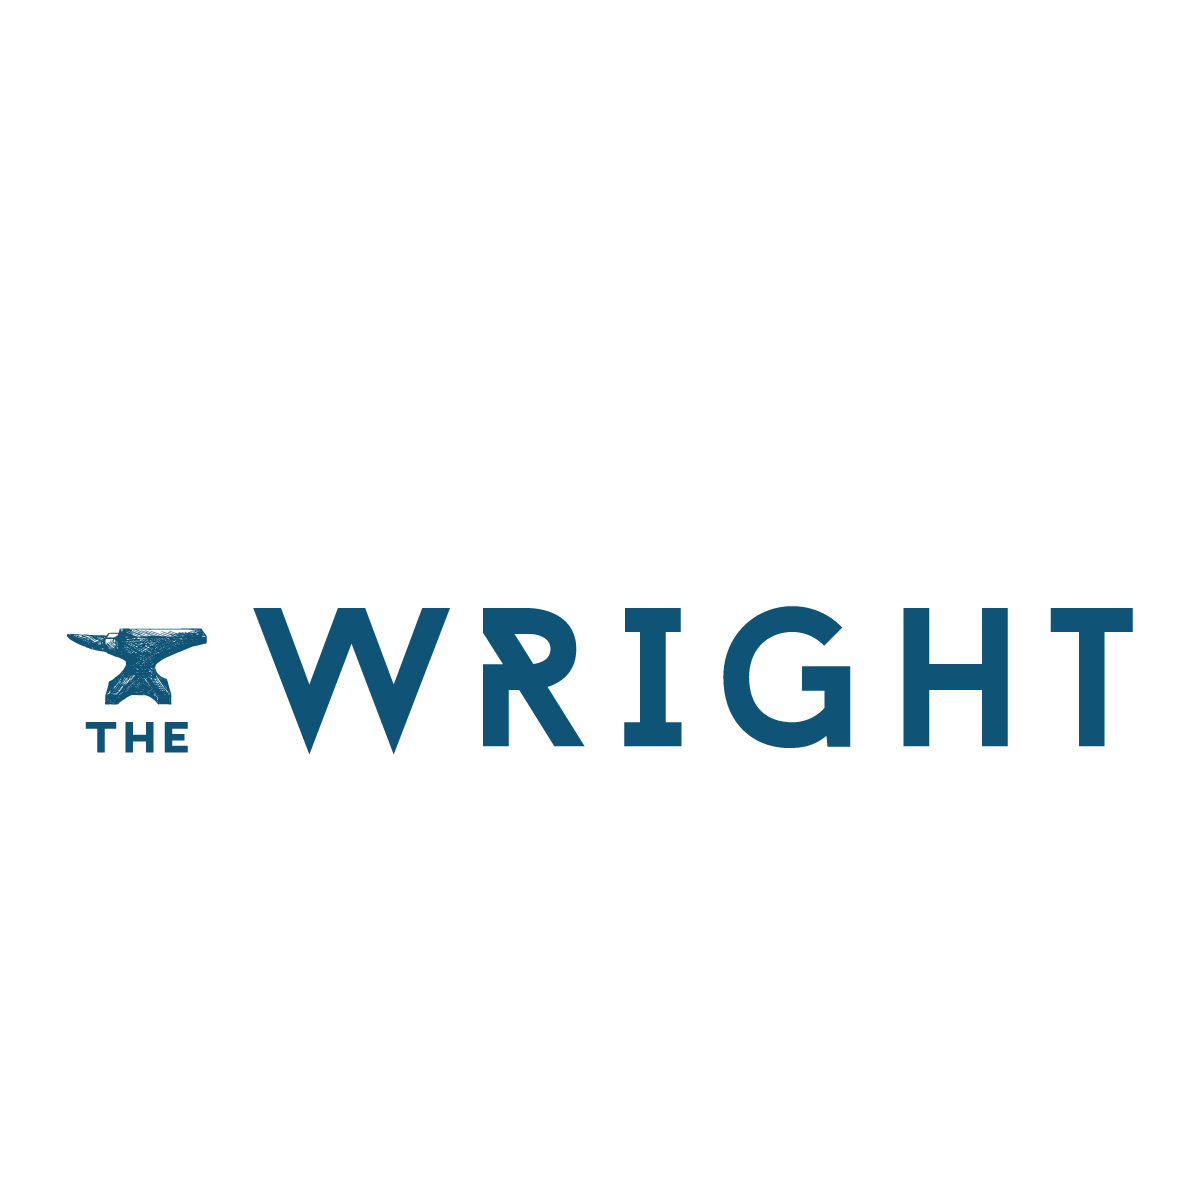 WrightLogo-01-01-01.png